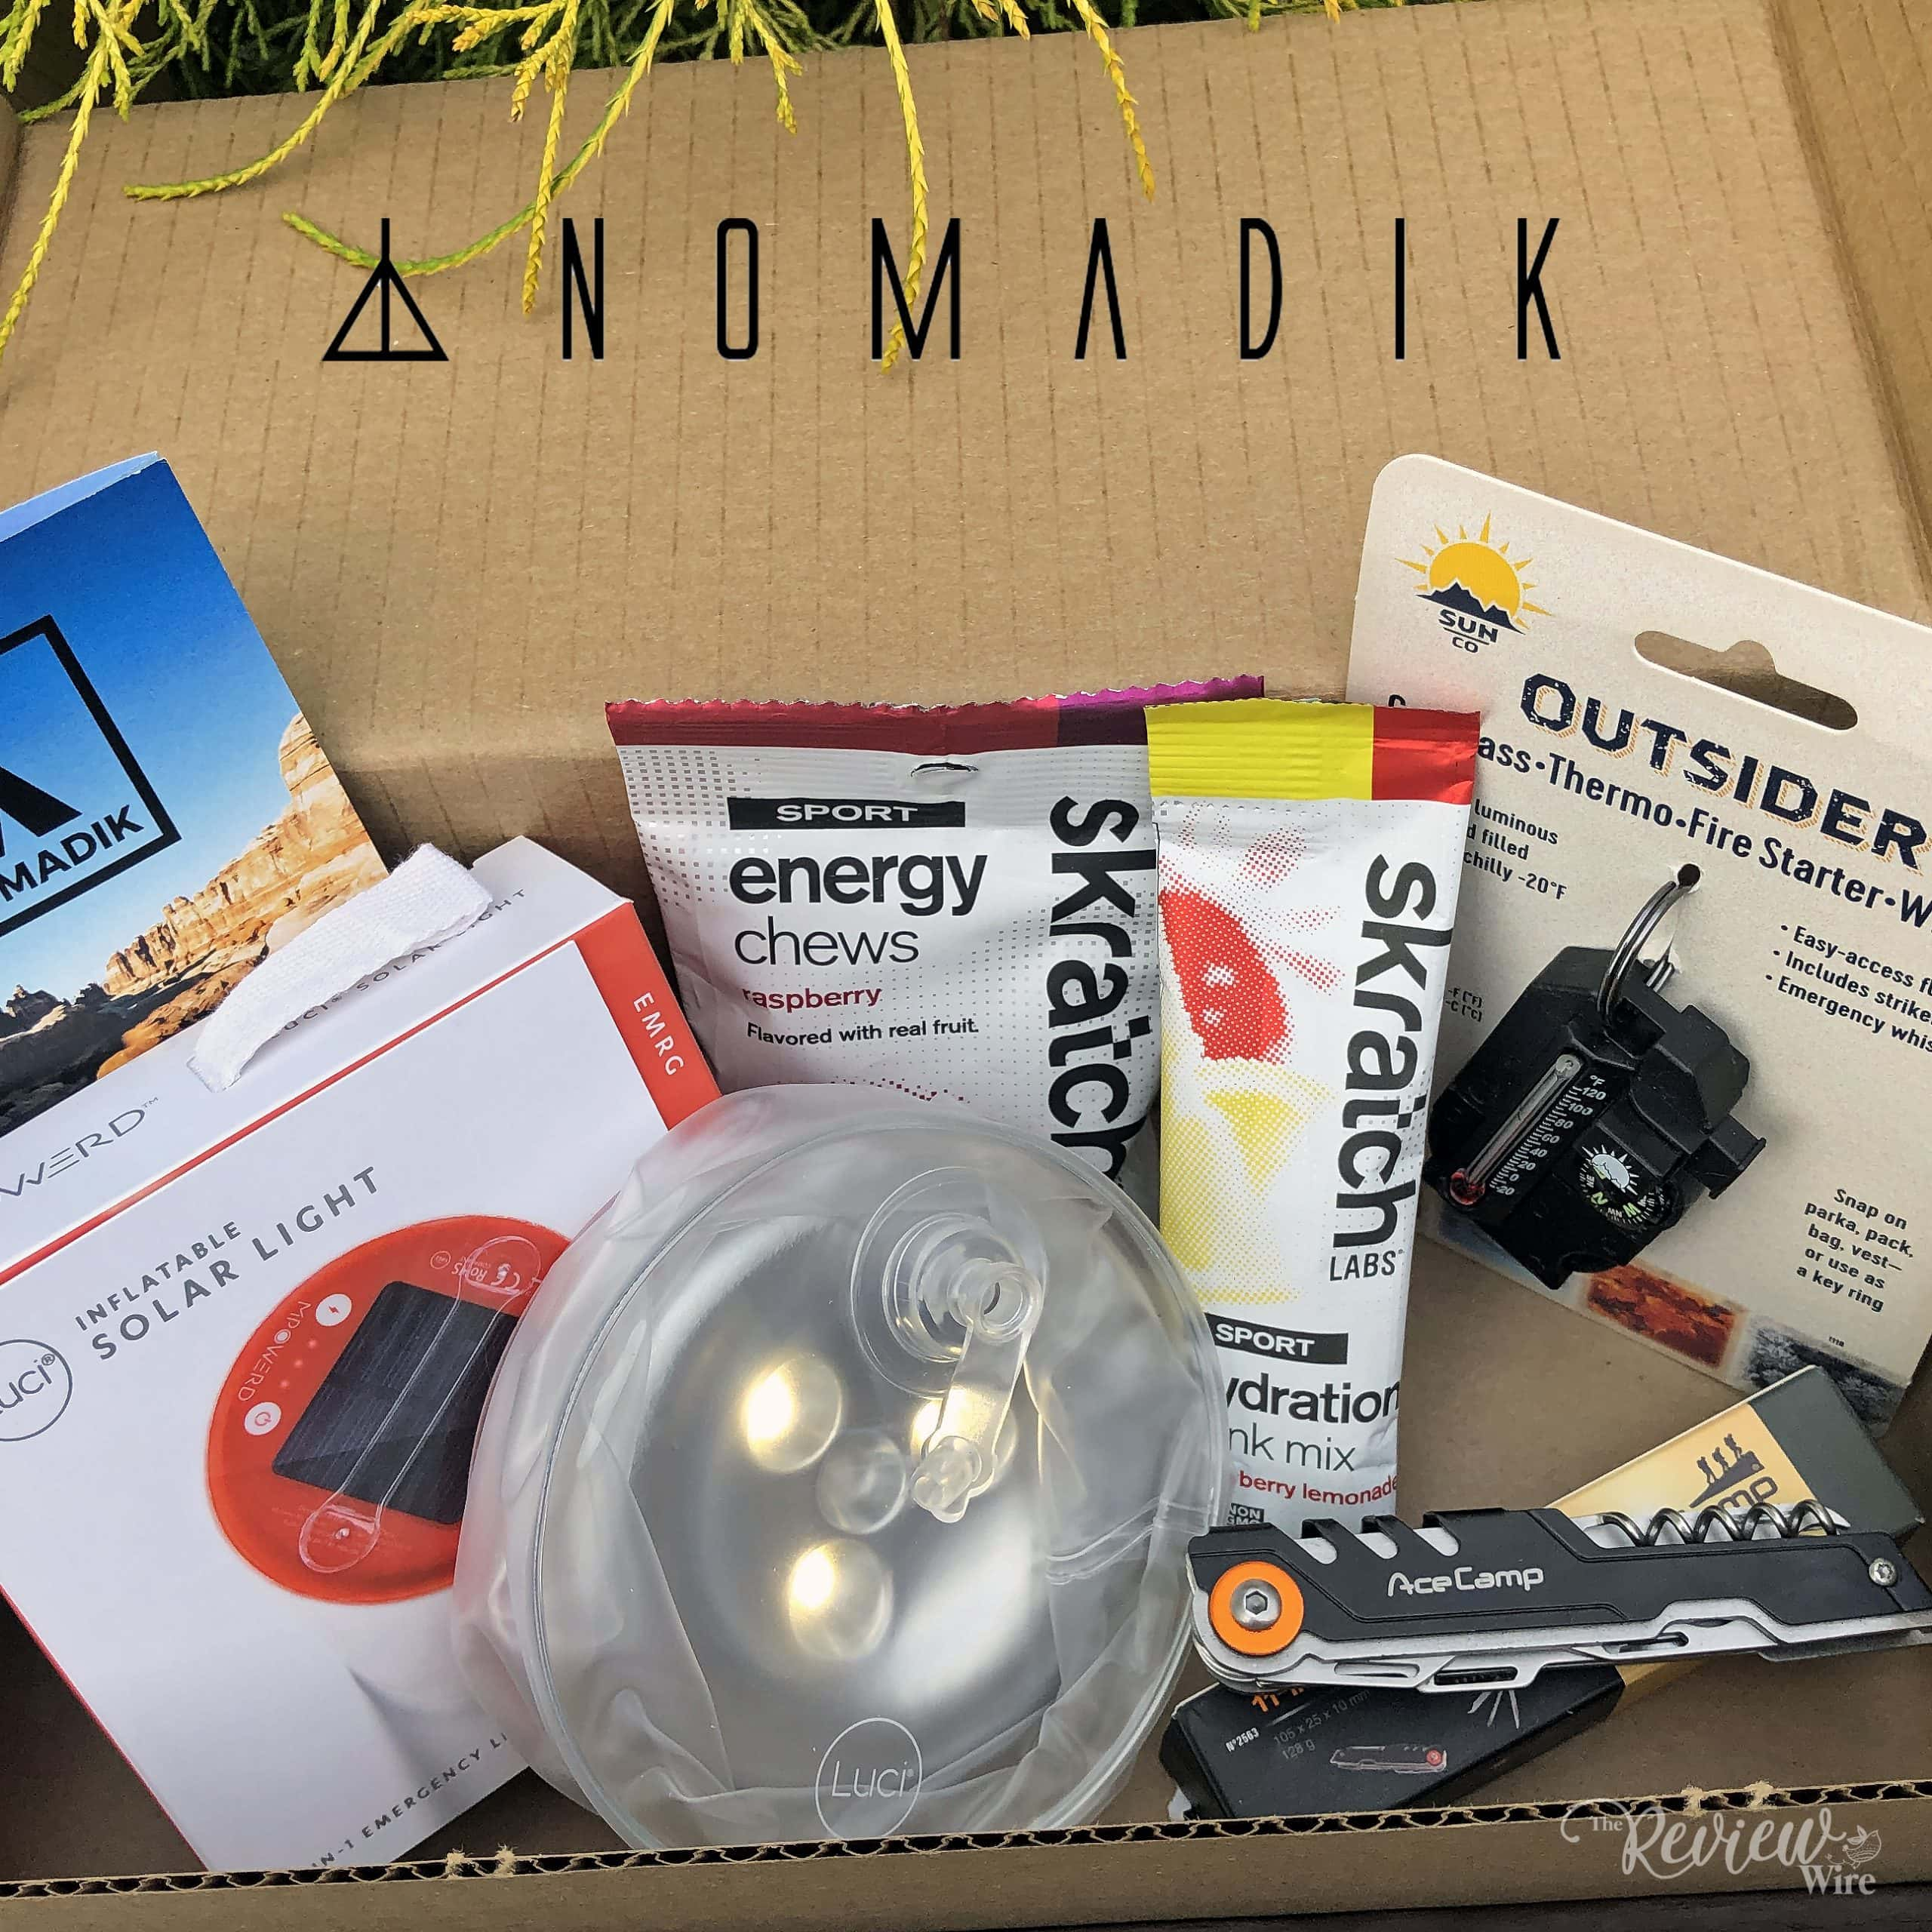 The Review Wire Summer Readiness with The Nomadik